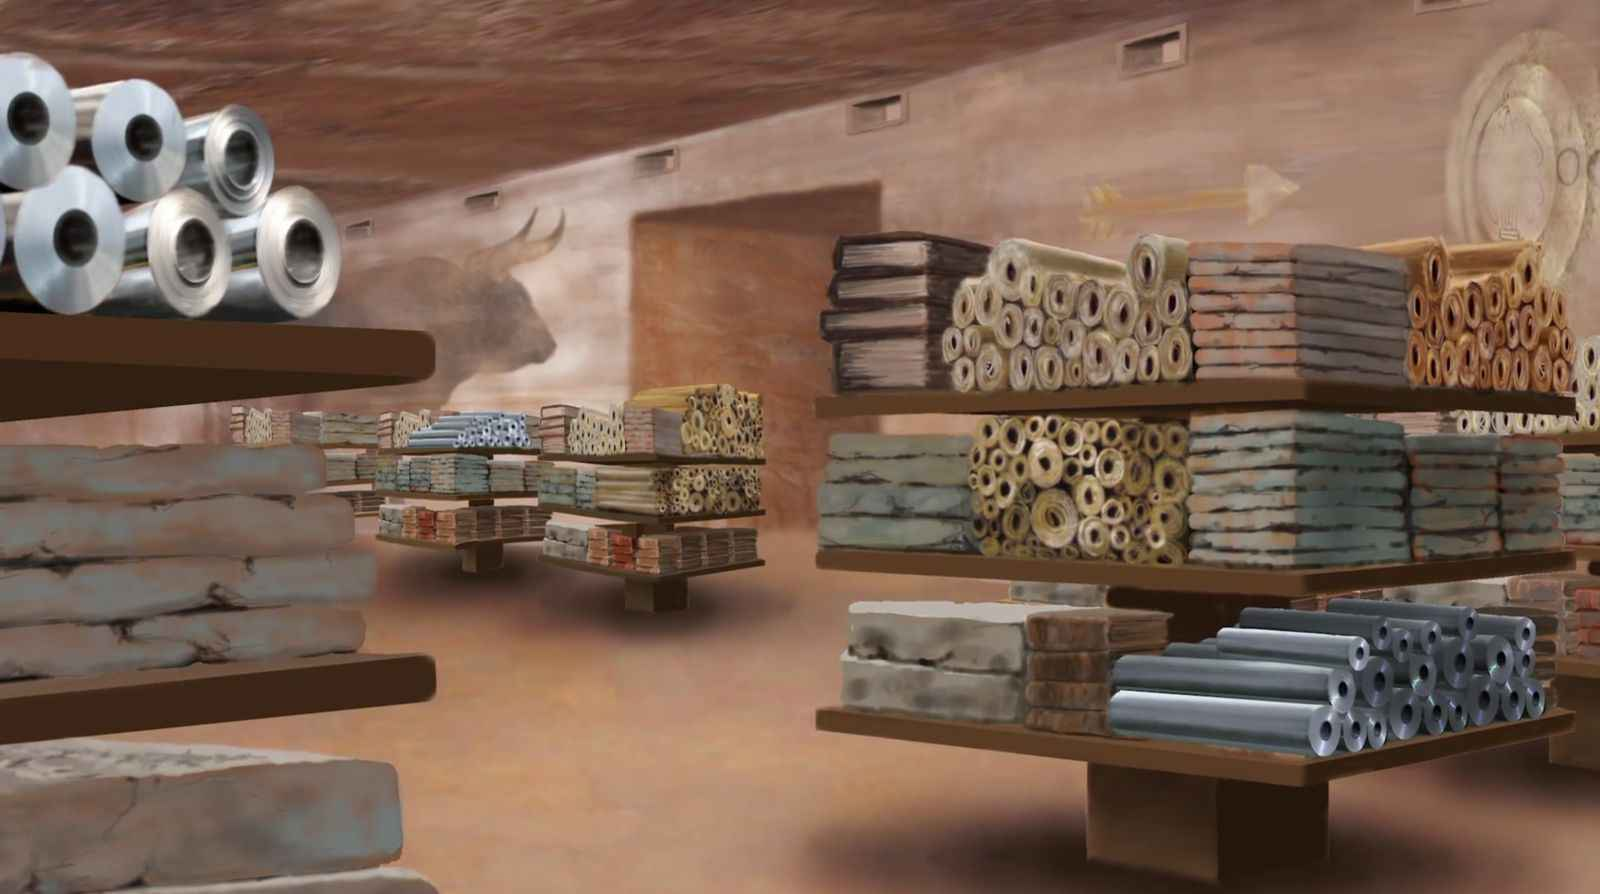 https://de.spherebeingalliance.com/media/img/1600x0/2017-02/16_Room_with_scrolls_books_records.jpg